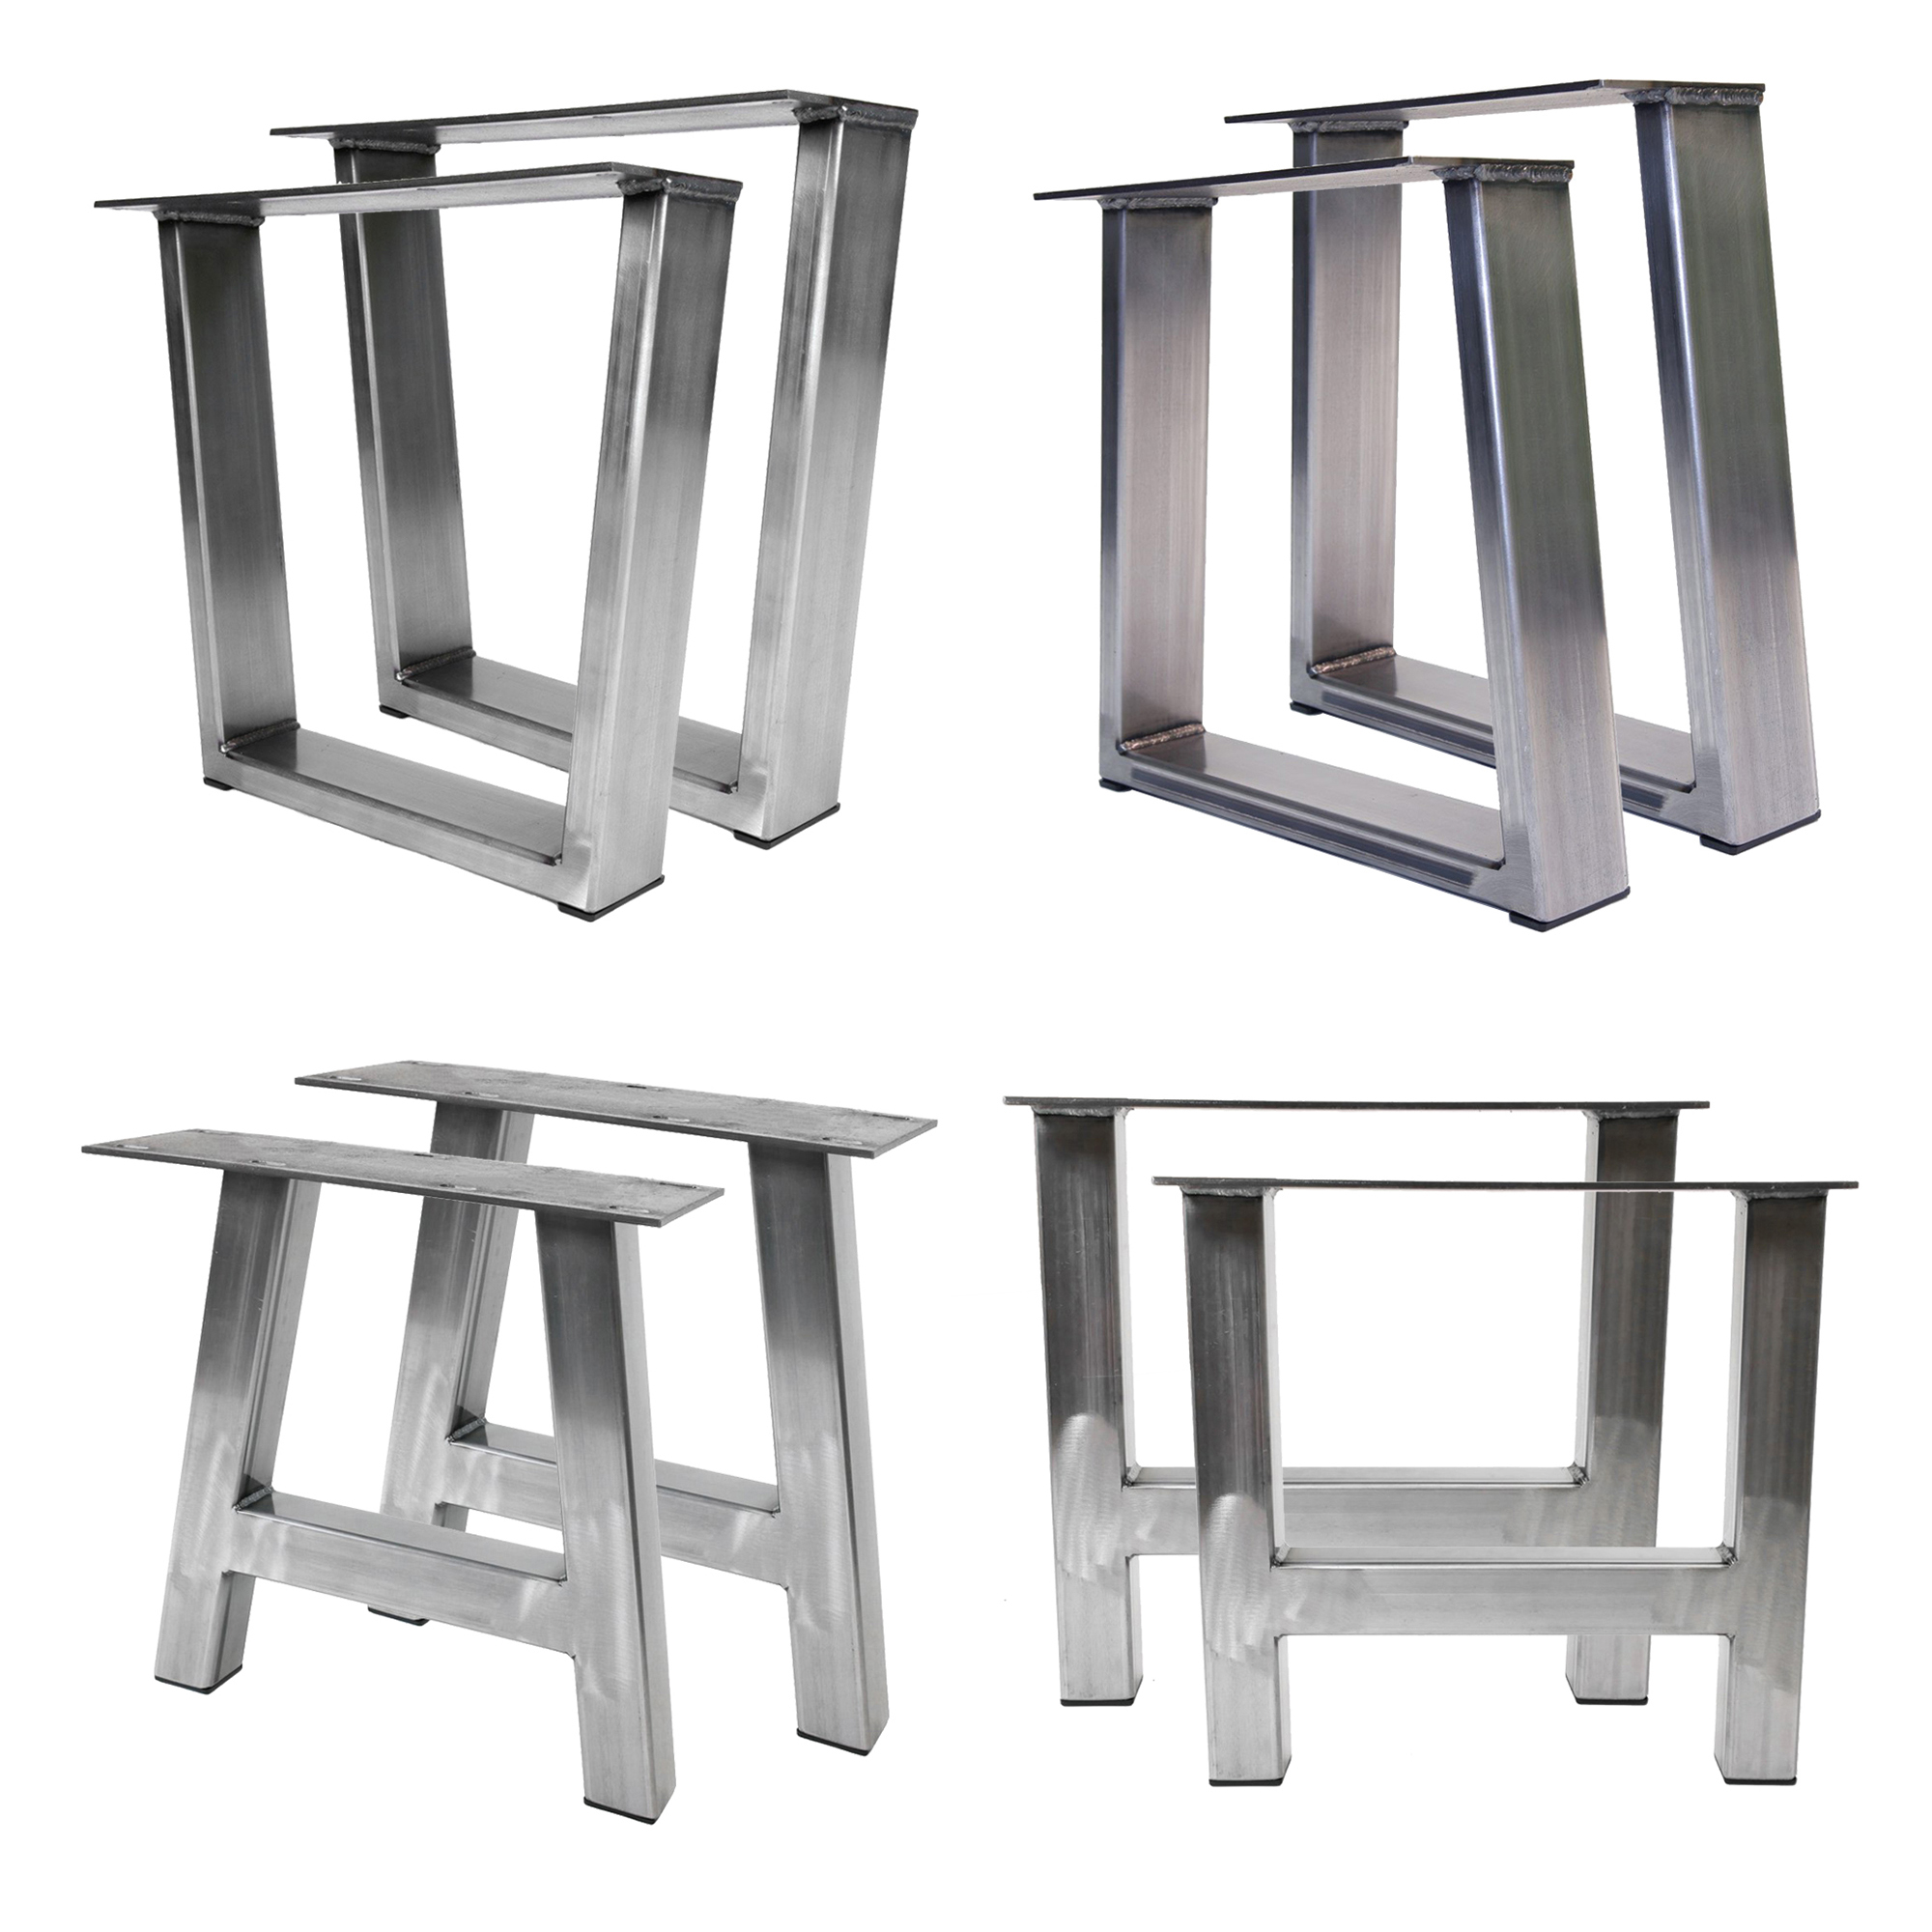 Whole Modern Stainless Steel Furniture Tzoids Rectangles Square Bench Legs Metal Table For Dining Coffee